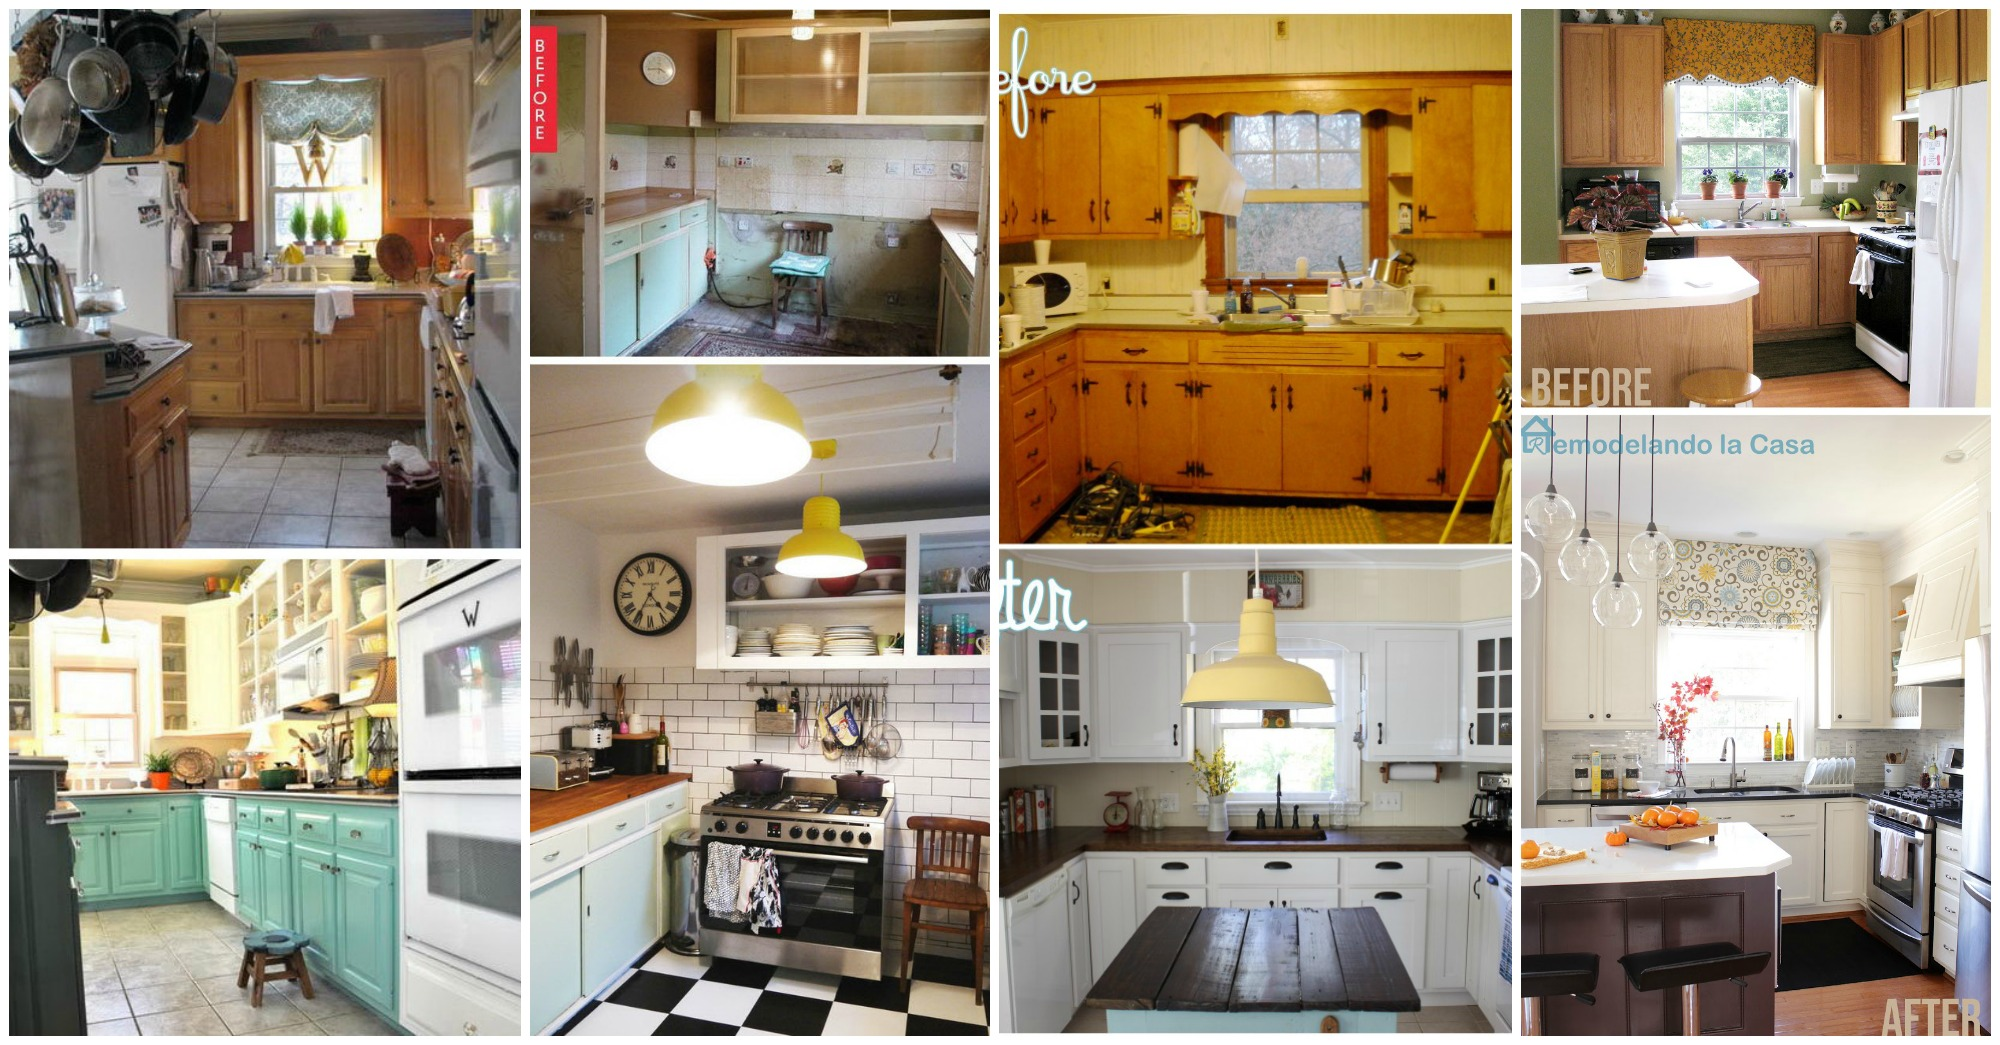 10 Fantastic Before And After Kitchen Makeovers